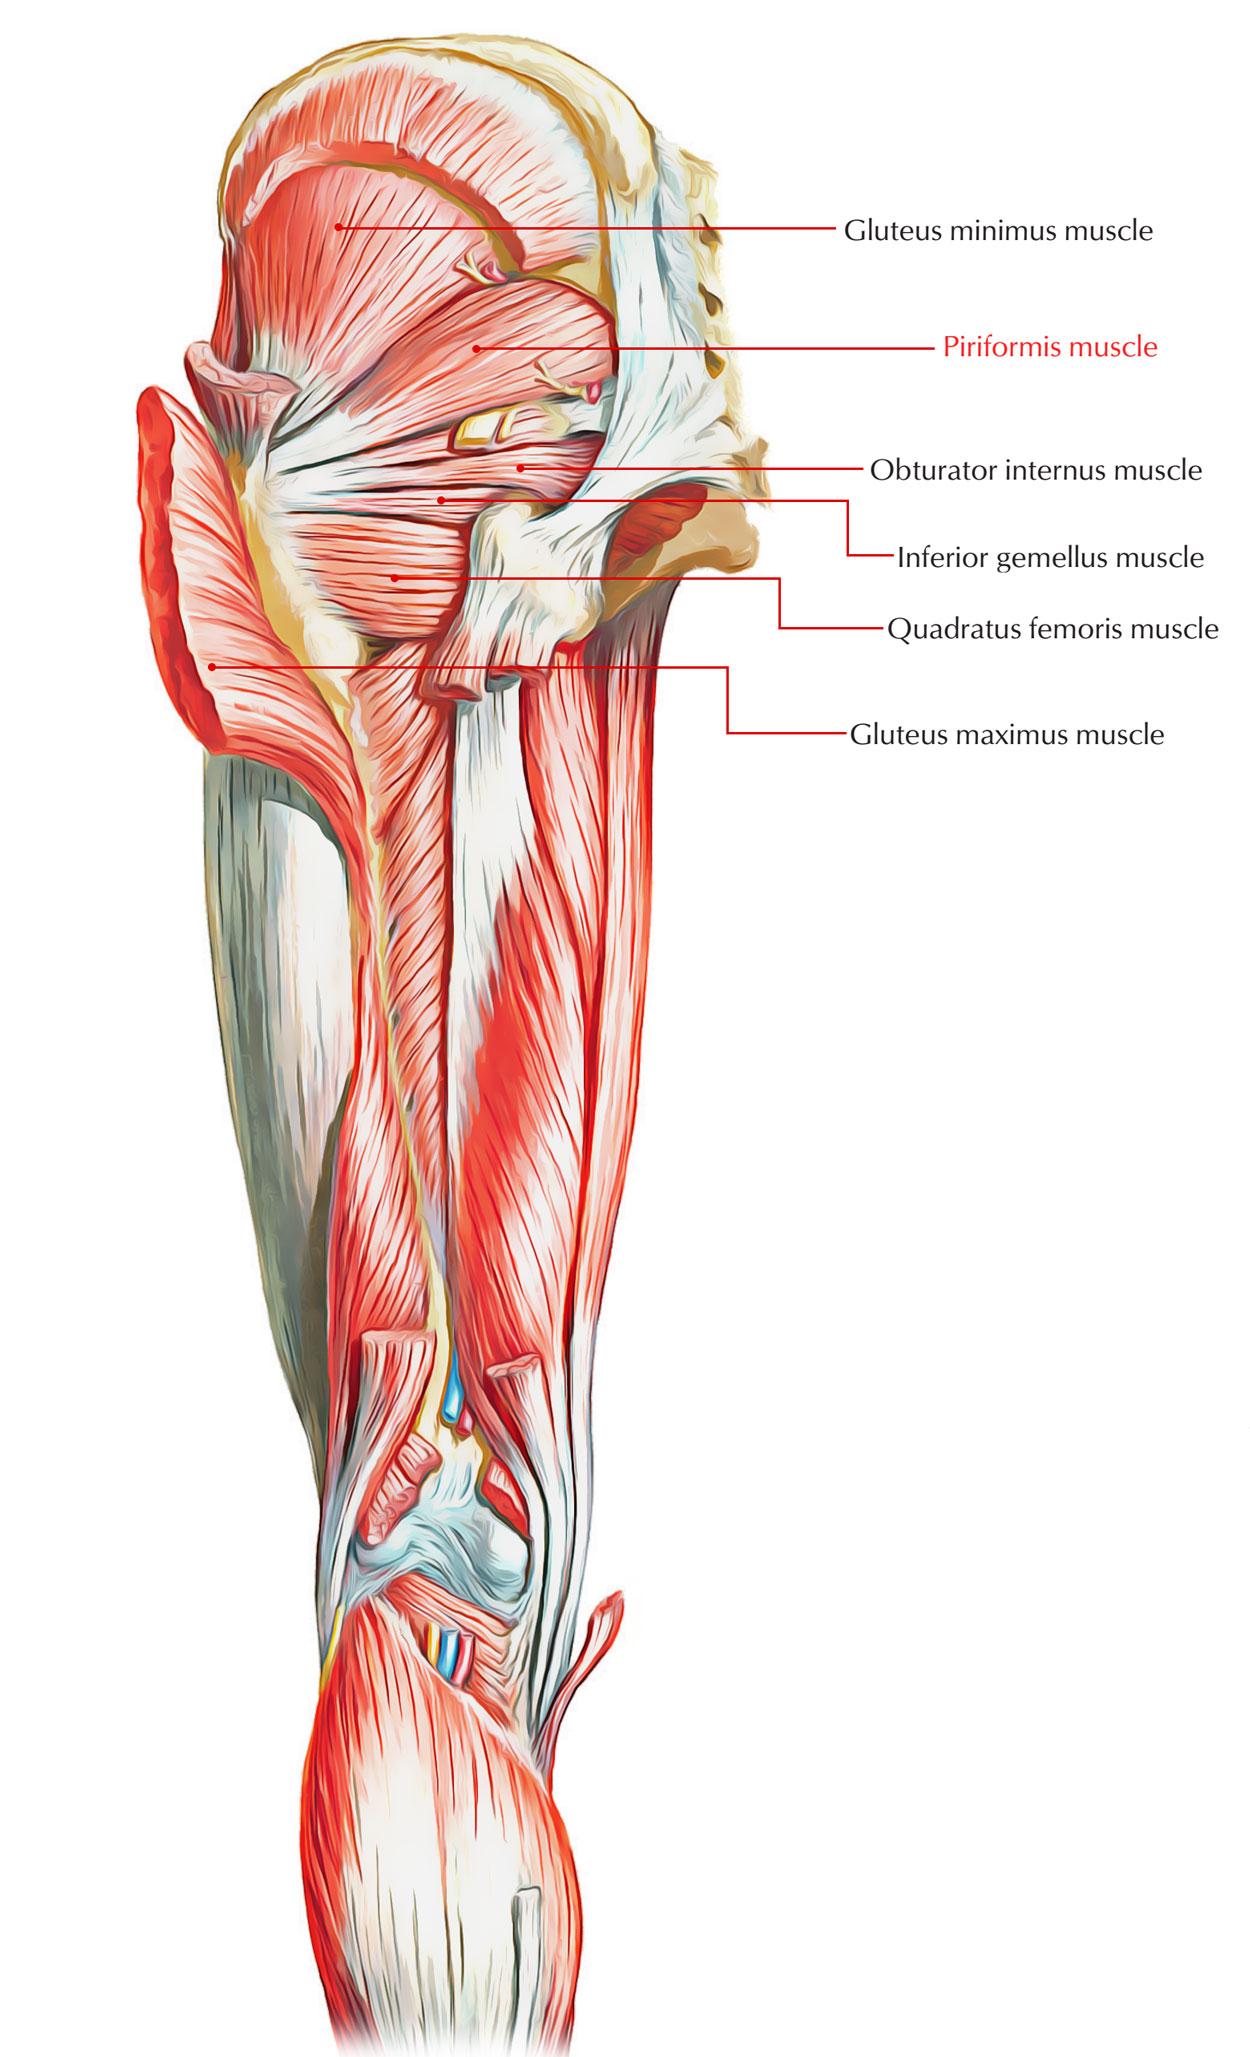 Muscles of the Pelvis: Piriformis